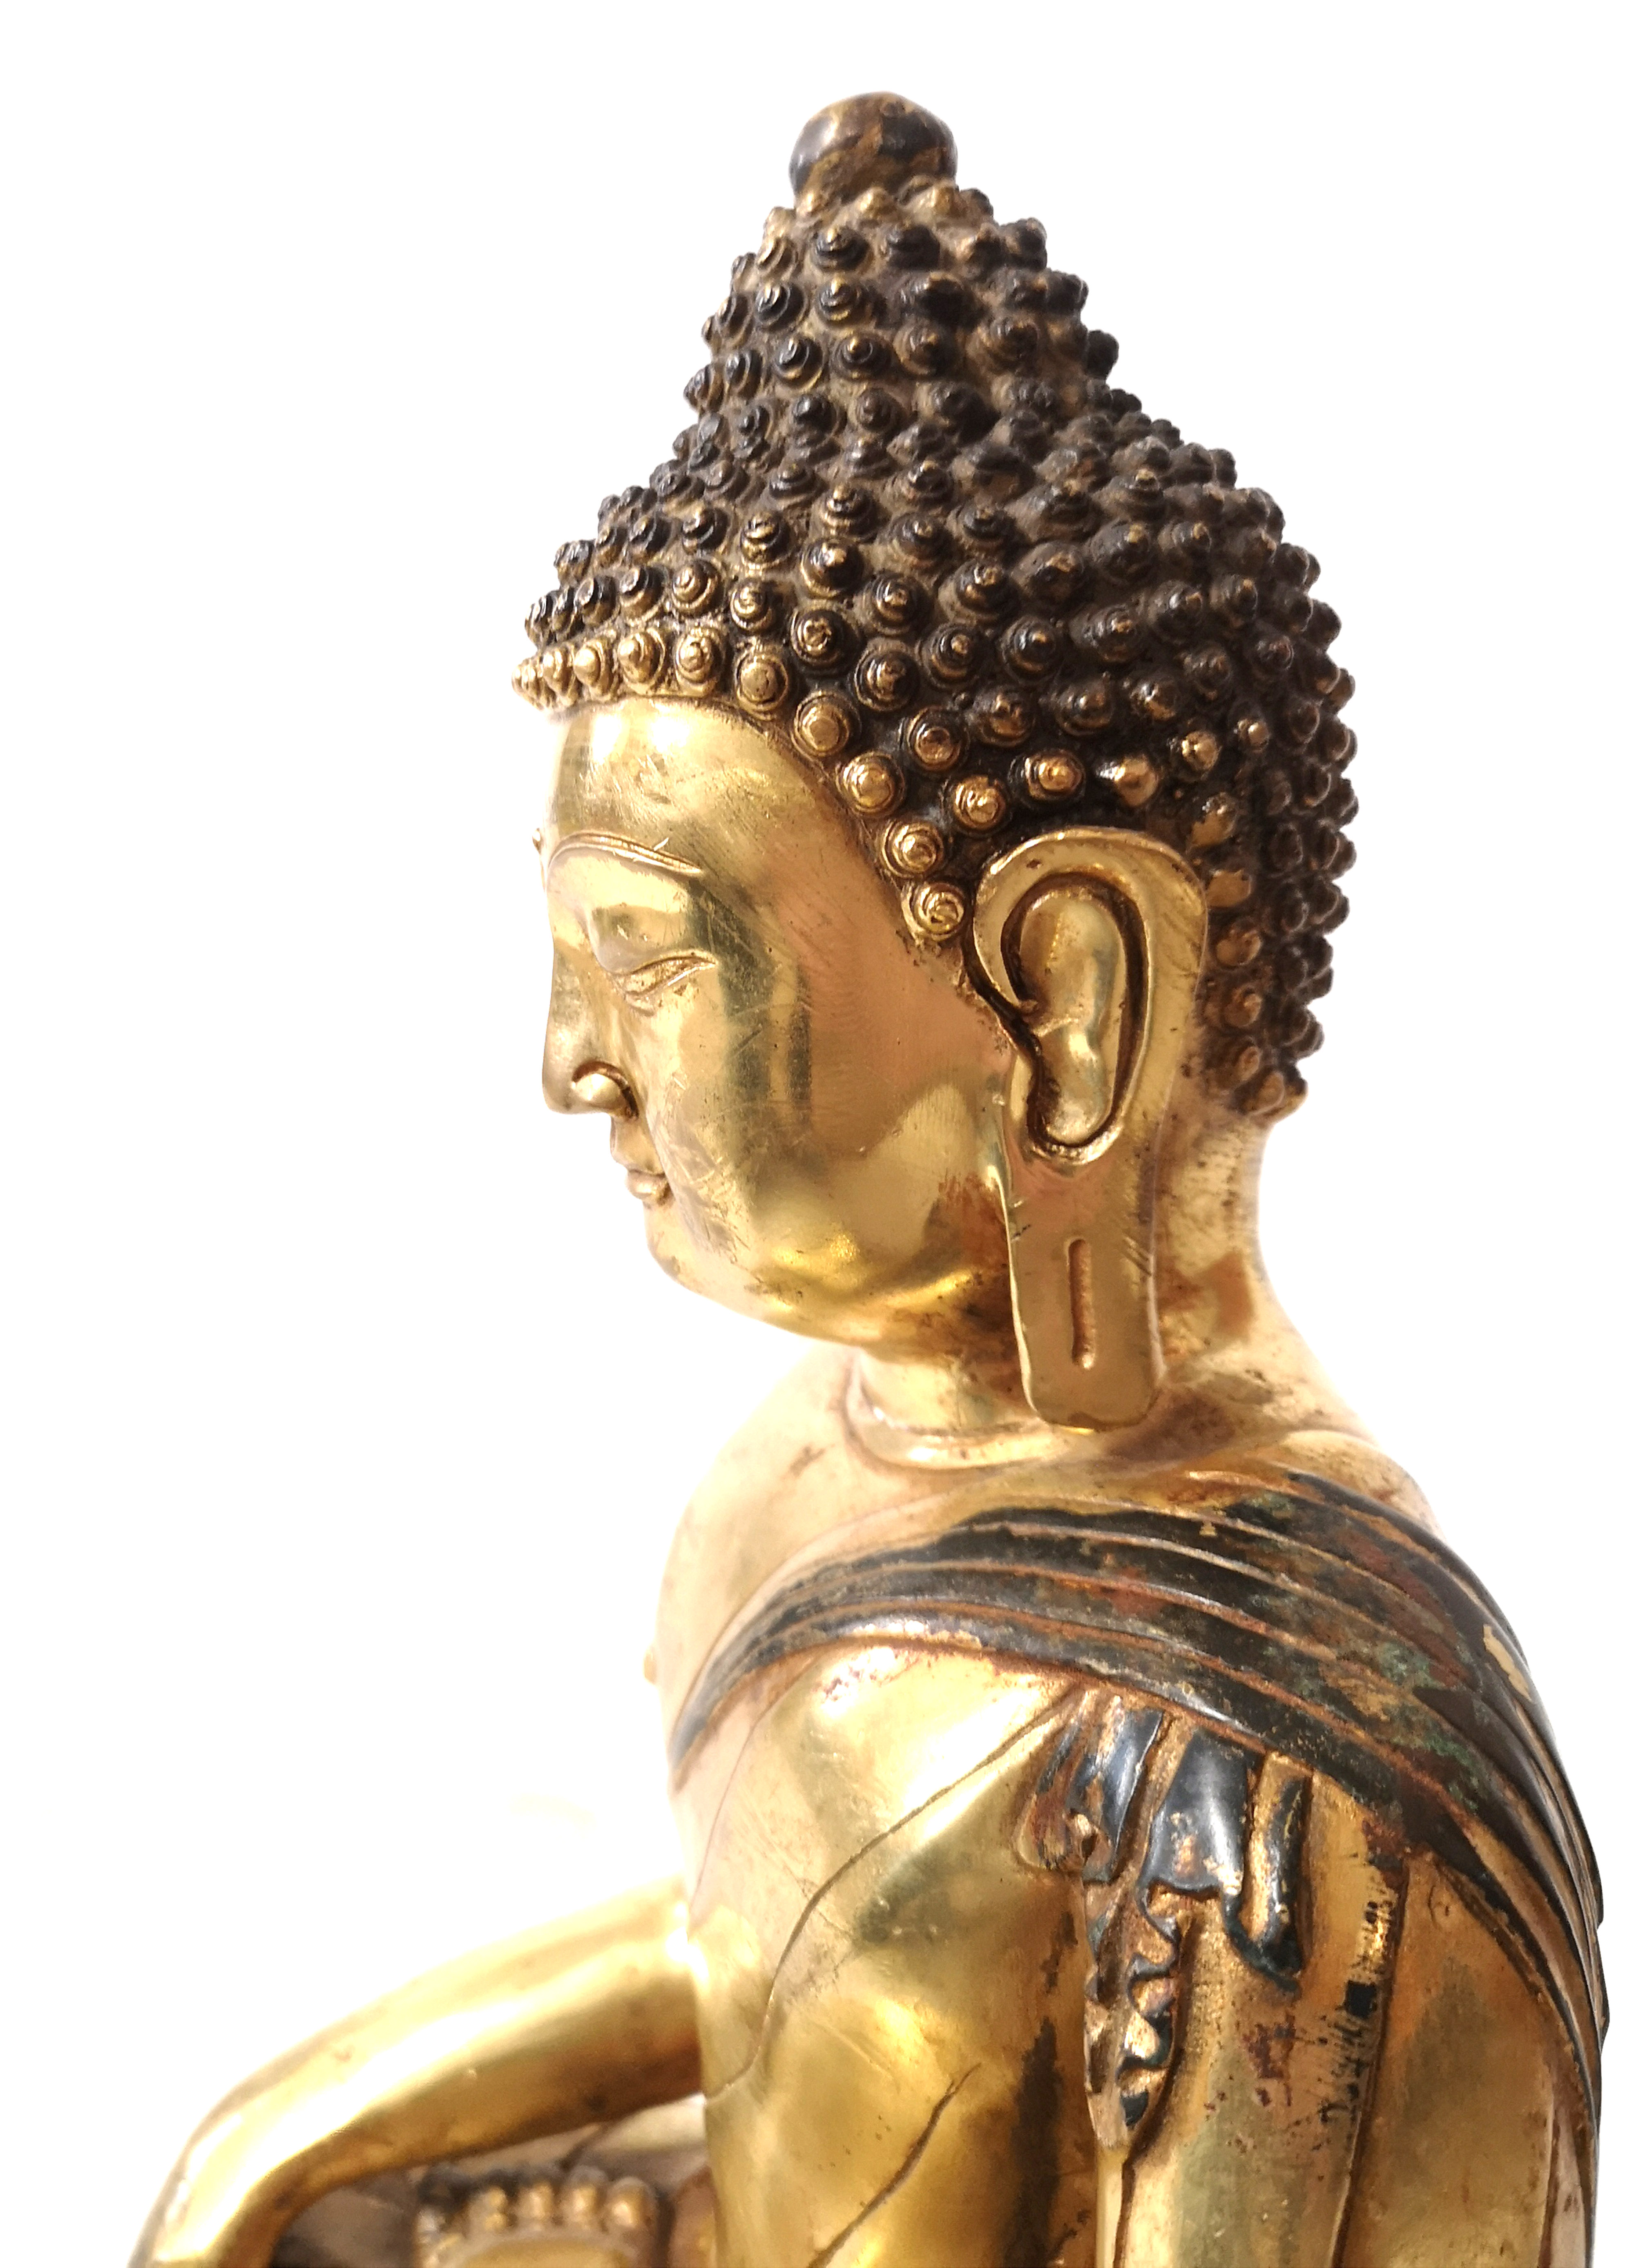 Lot 173 - A LARGE CHINESE GILT BRONZE BUDDHA Seated pose on double lotus base